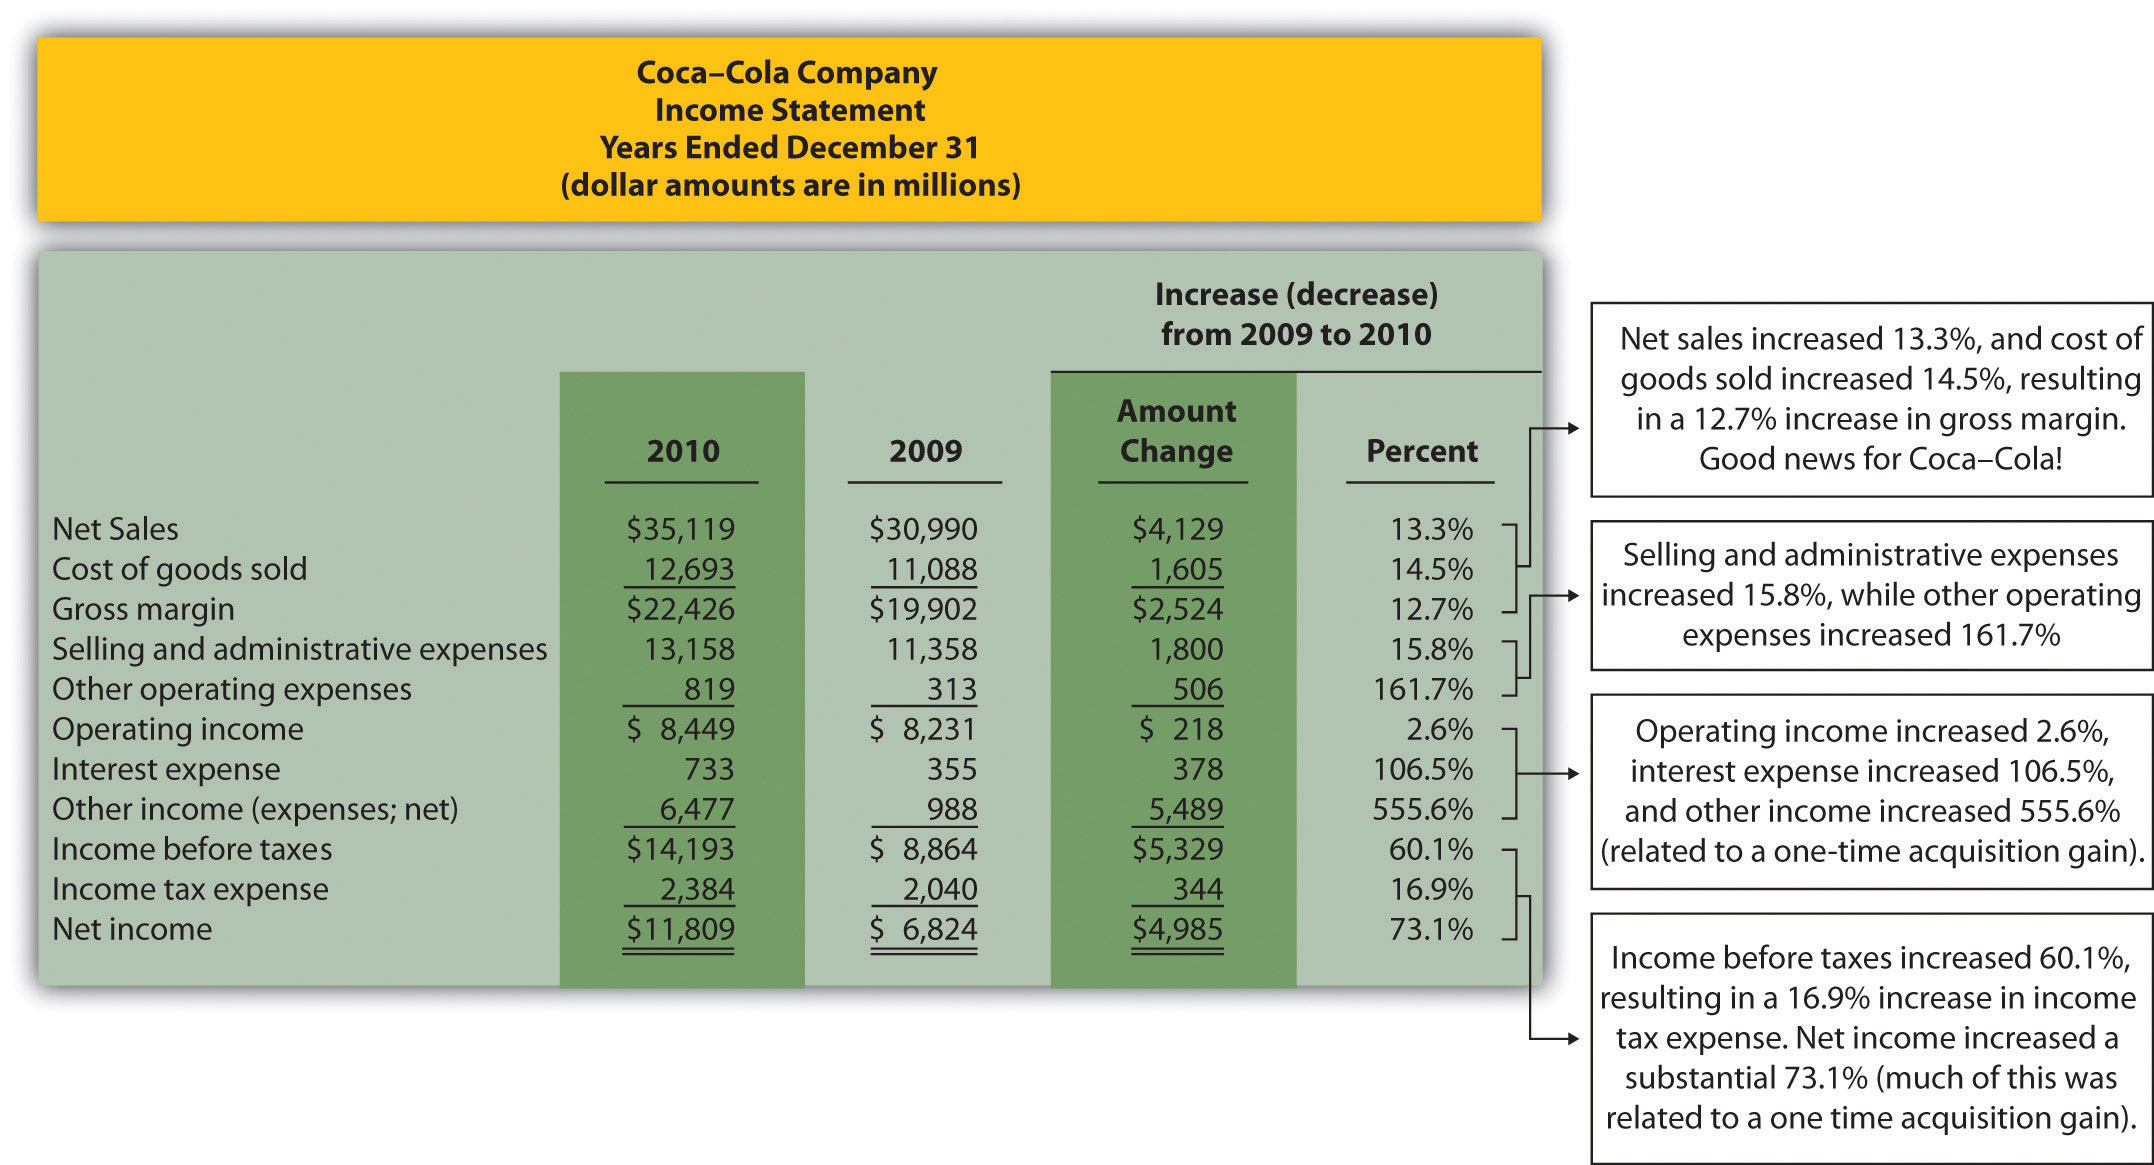 coca cola analysis accounting This file contains a financial analysis of the coca-cola company sample information includes: with its corporate headquarters based in atlanta, georgia, and a global.